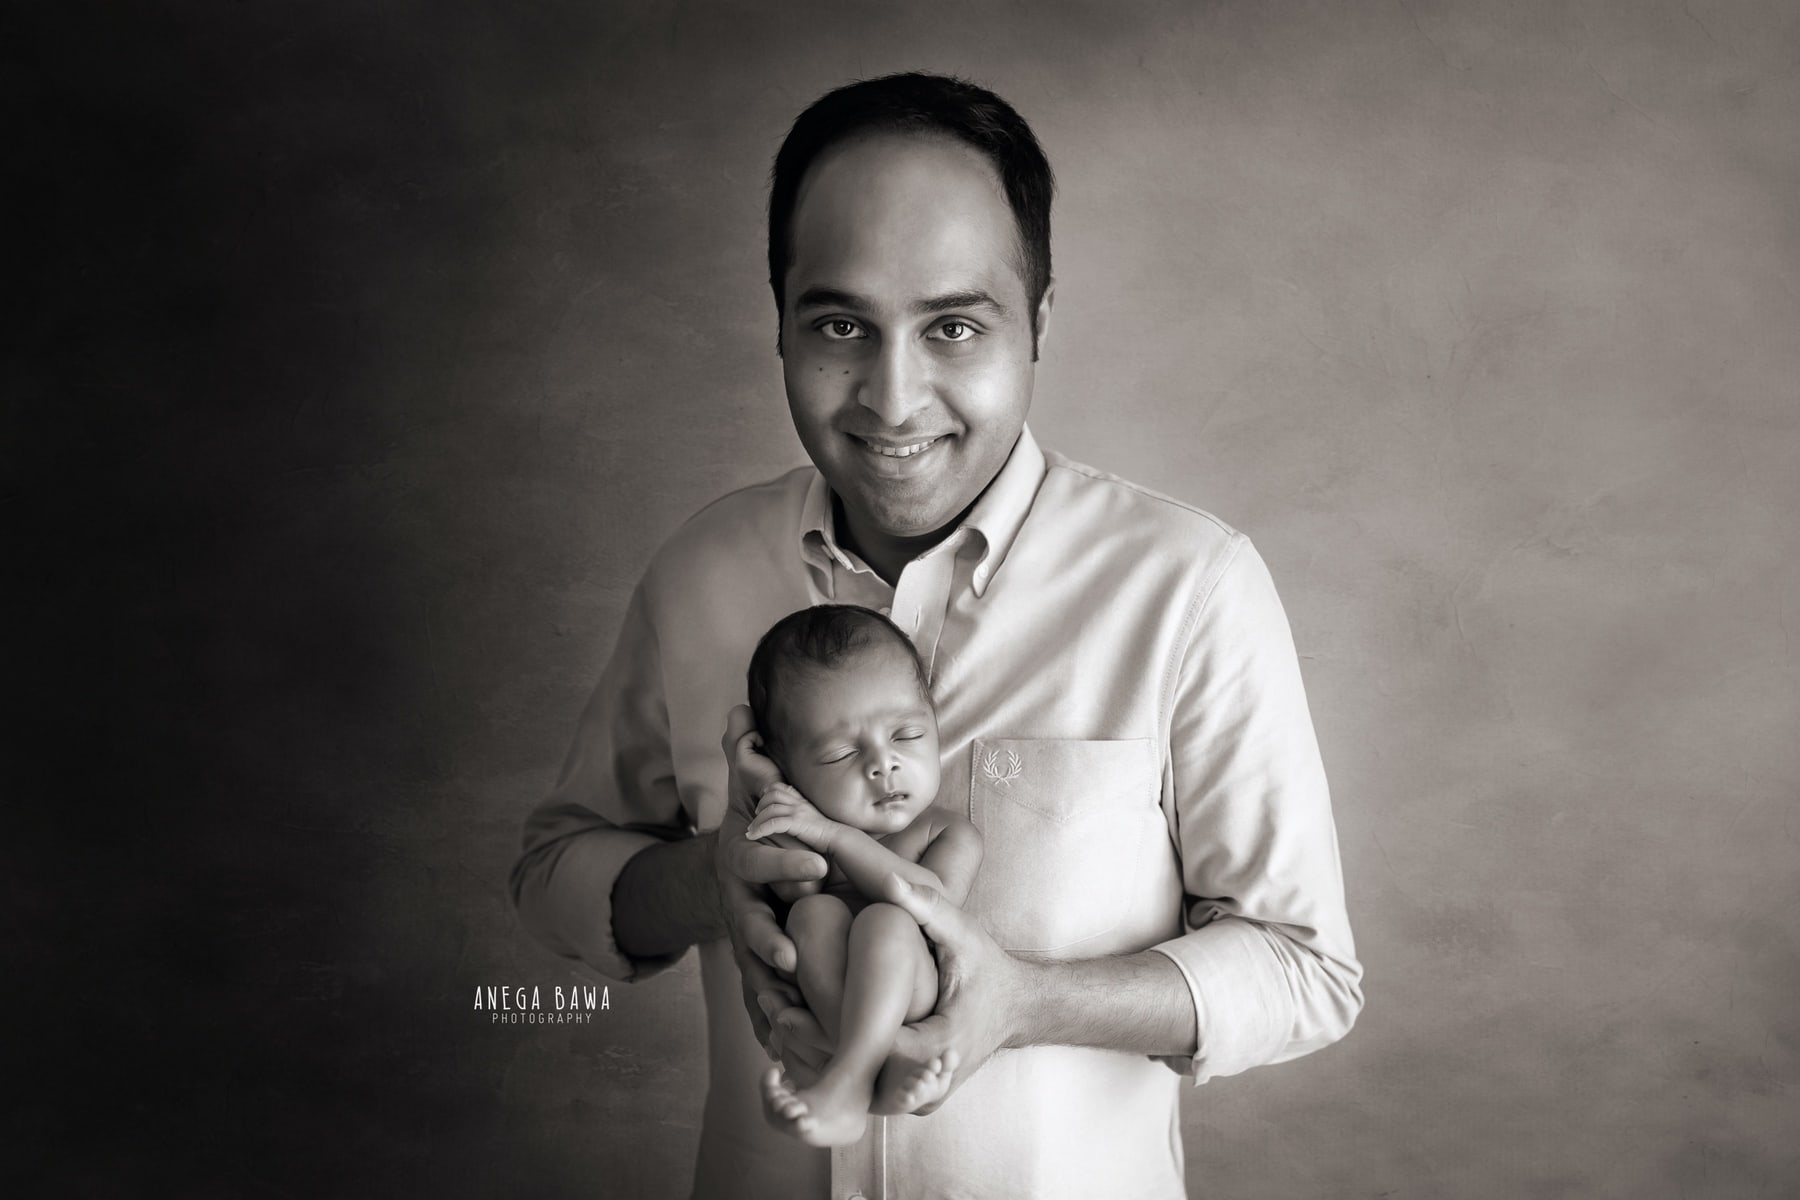 black white father and baby photography delhi 10 days newborn photoshoot gurgaon anega bawa